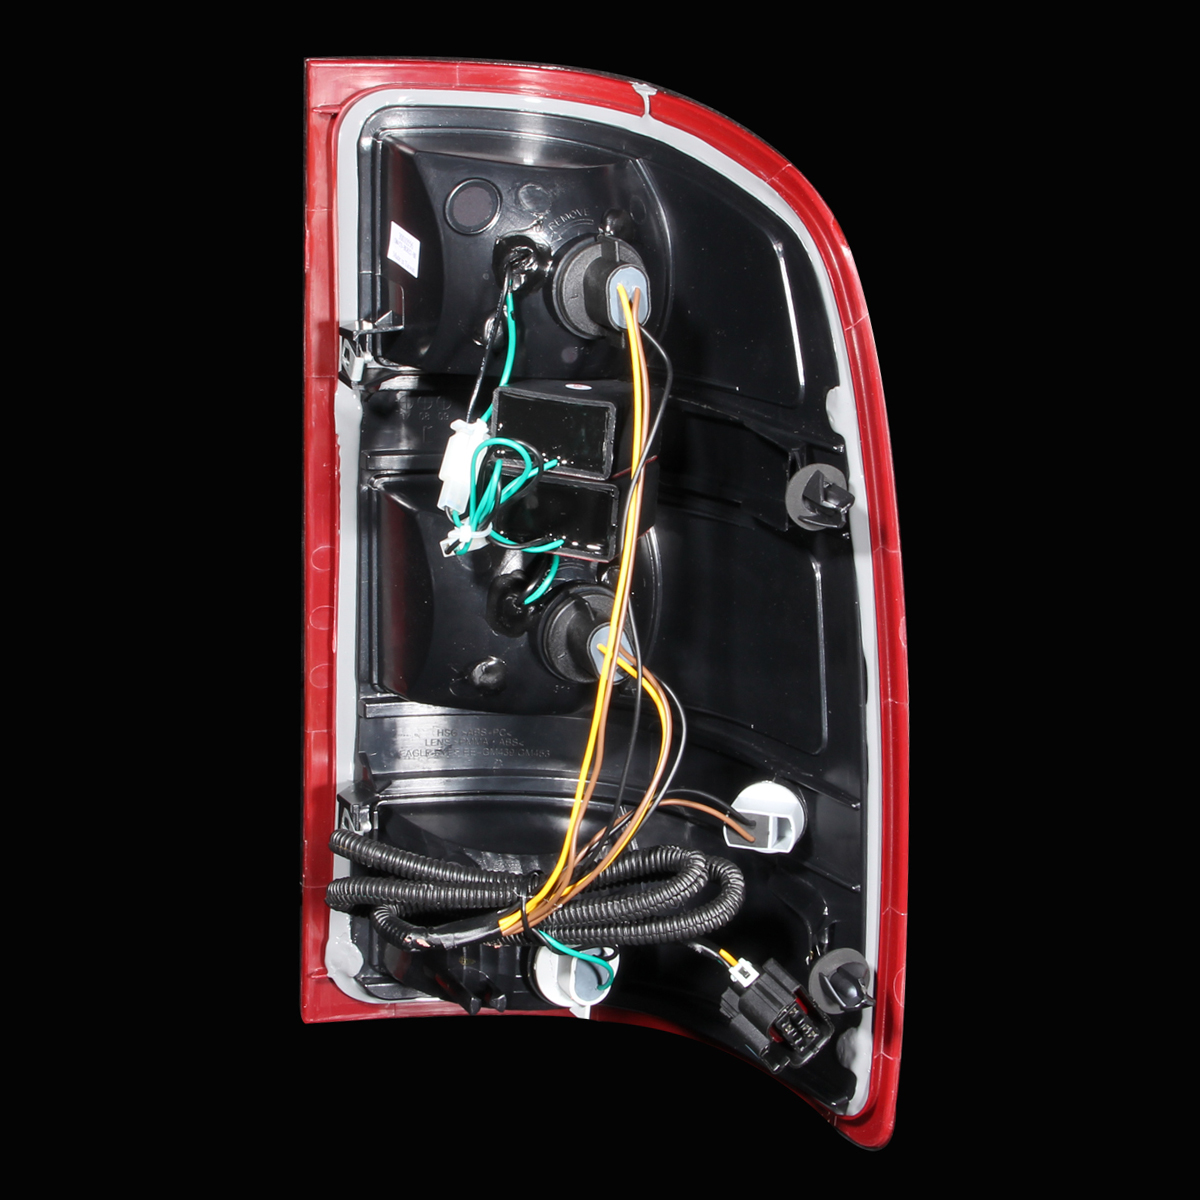 Gmc 2009 2500 Tail Light Wiring Guide And Troubleshooting Of 2012 Sierra 2007 2008 2010 2011 2013 1500 Diagram Chevy Truck